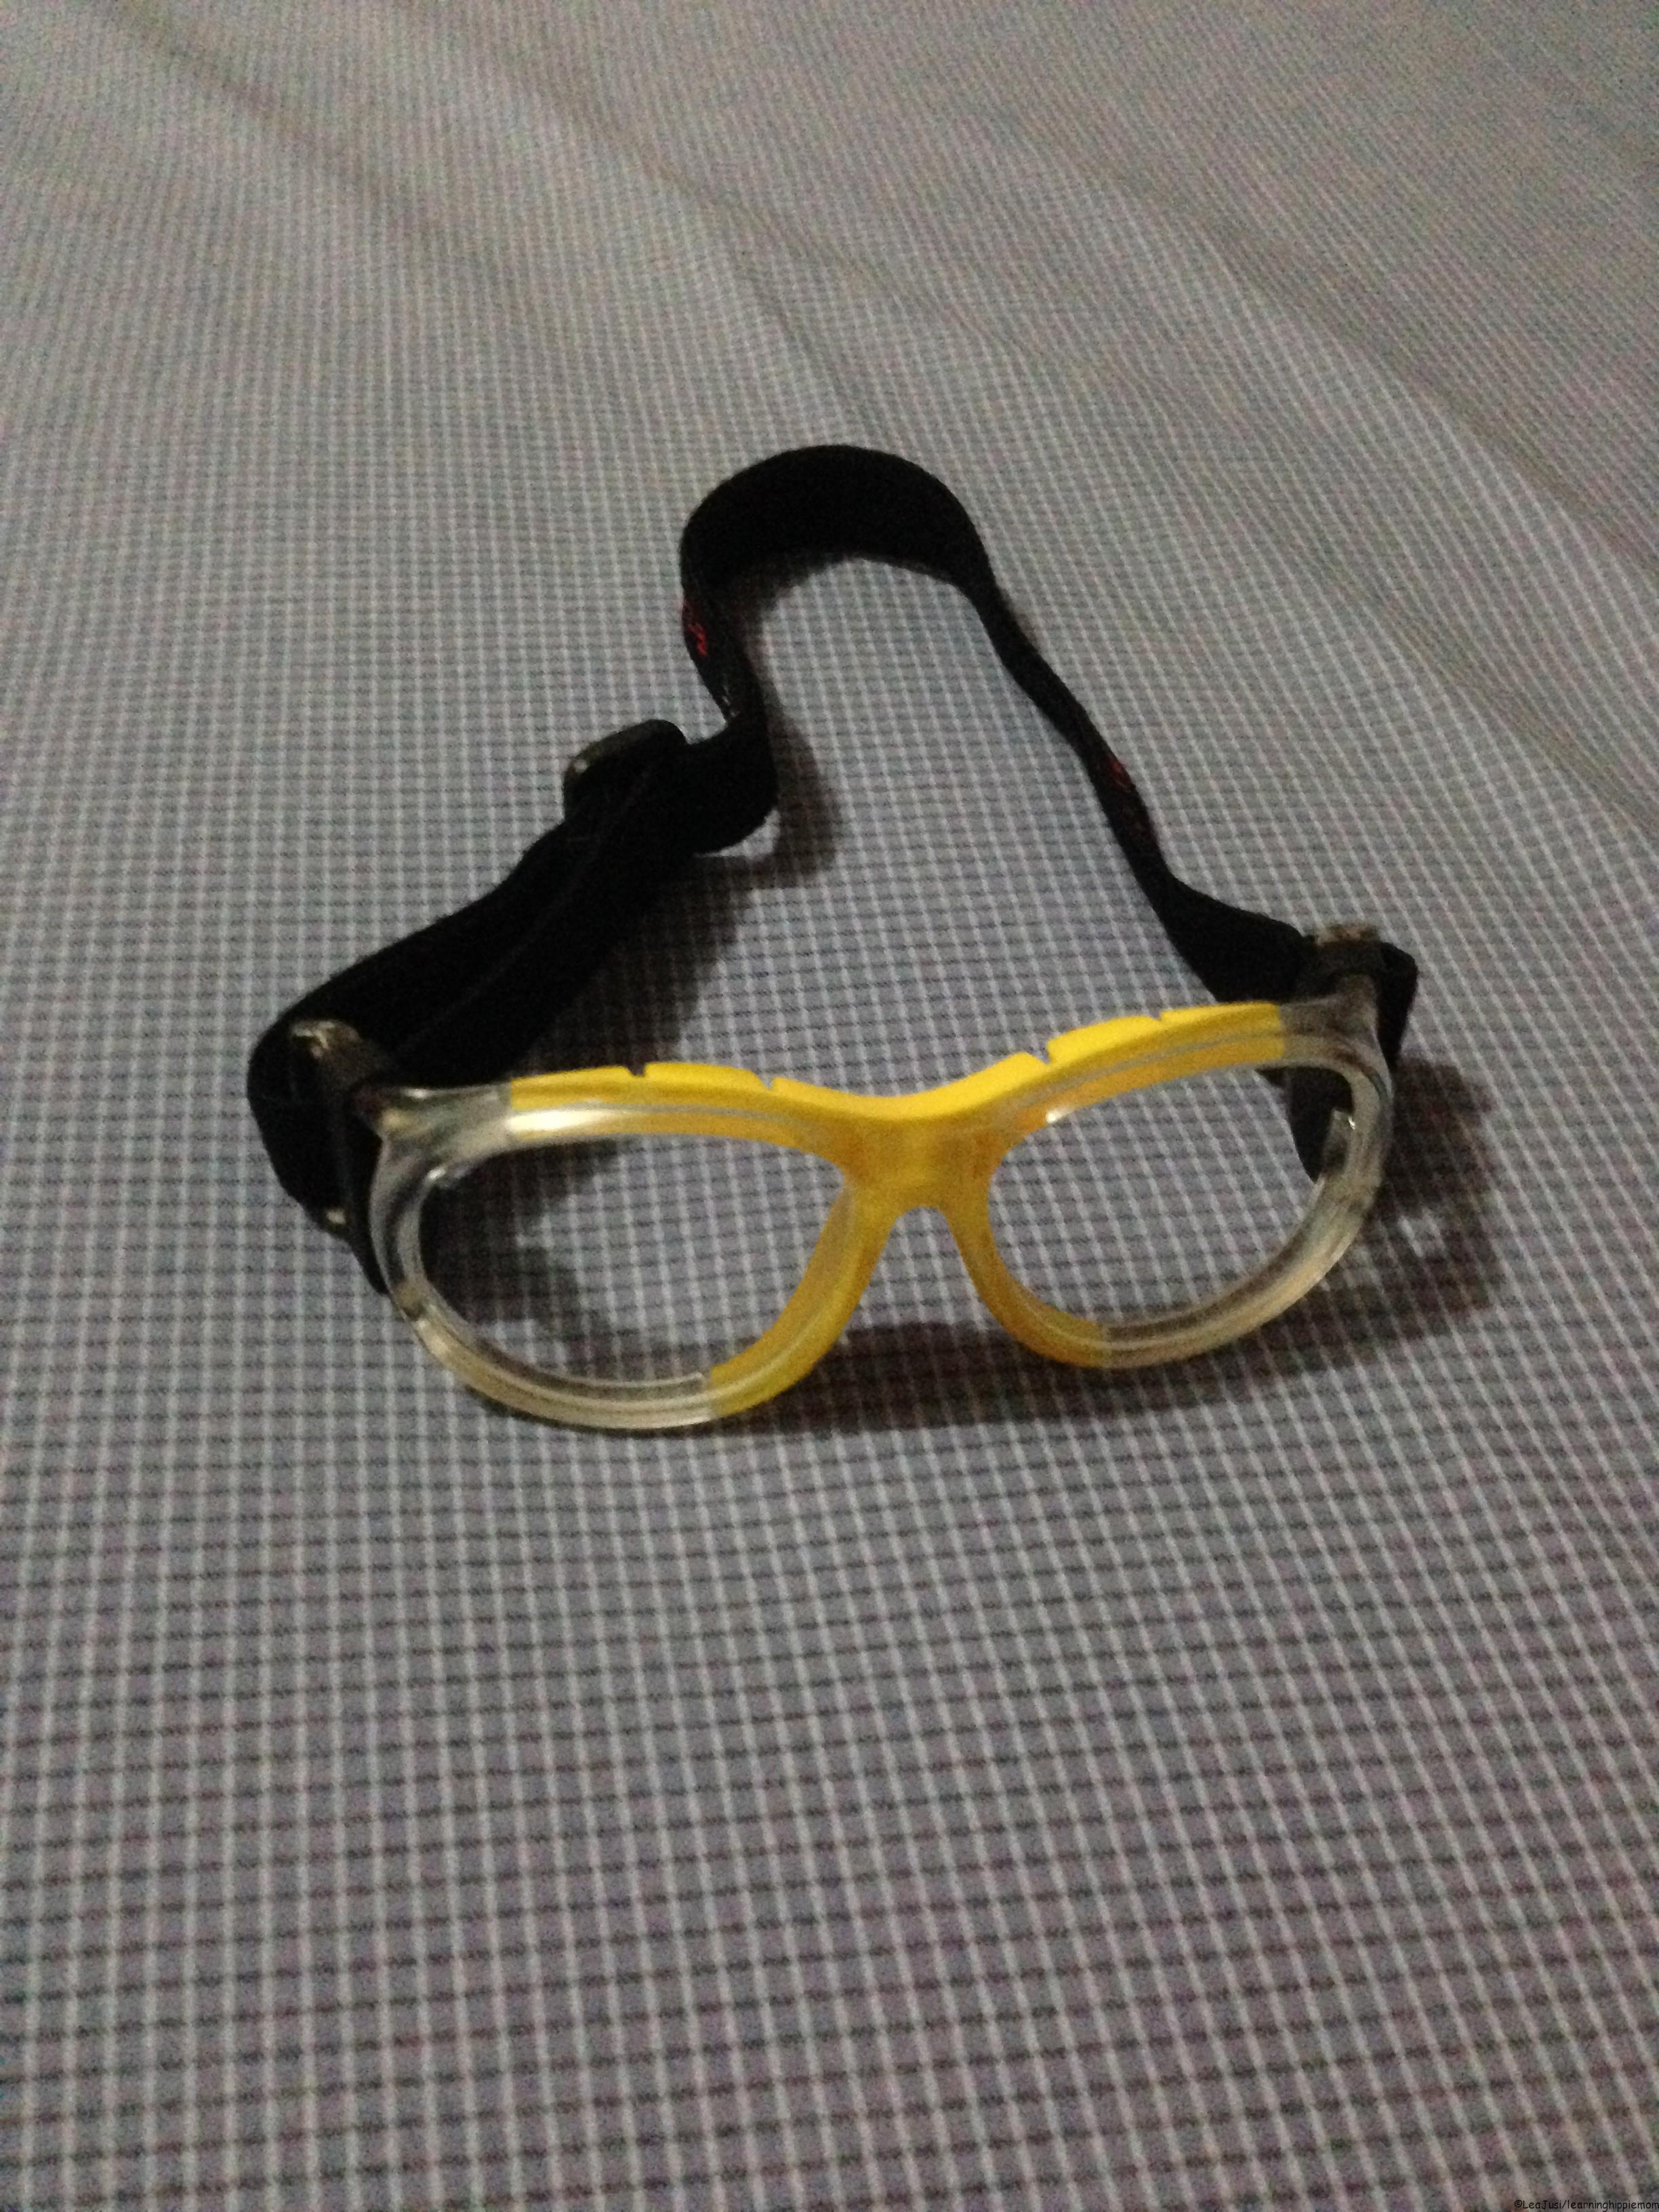 Sports frames for eyeglasses - Finally My Son Is Using Sports Goggles When Playing Basketball It Took Over A Year And Two Broken Eyeglass Frames For Me To Make This Choice